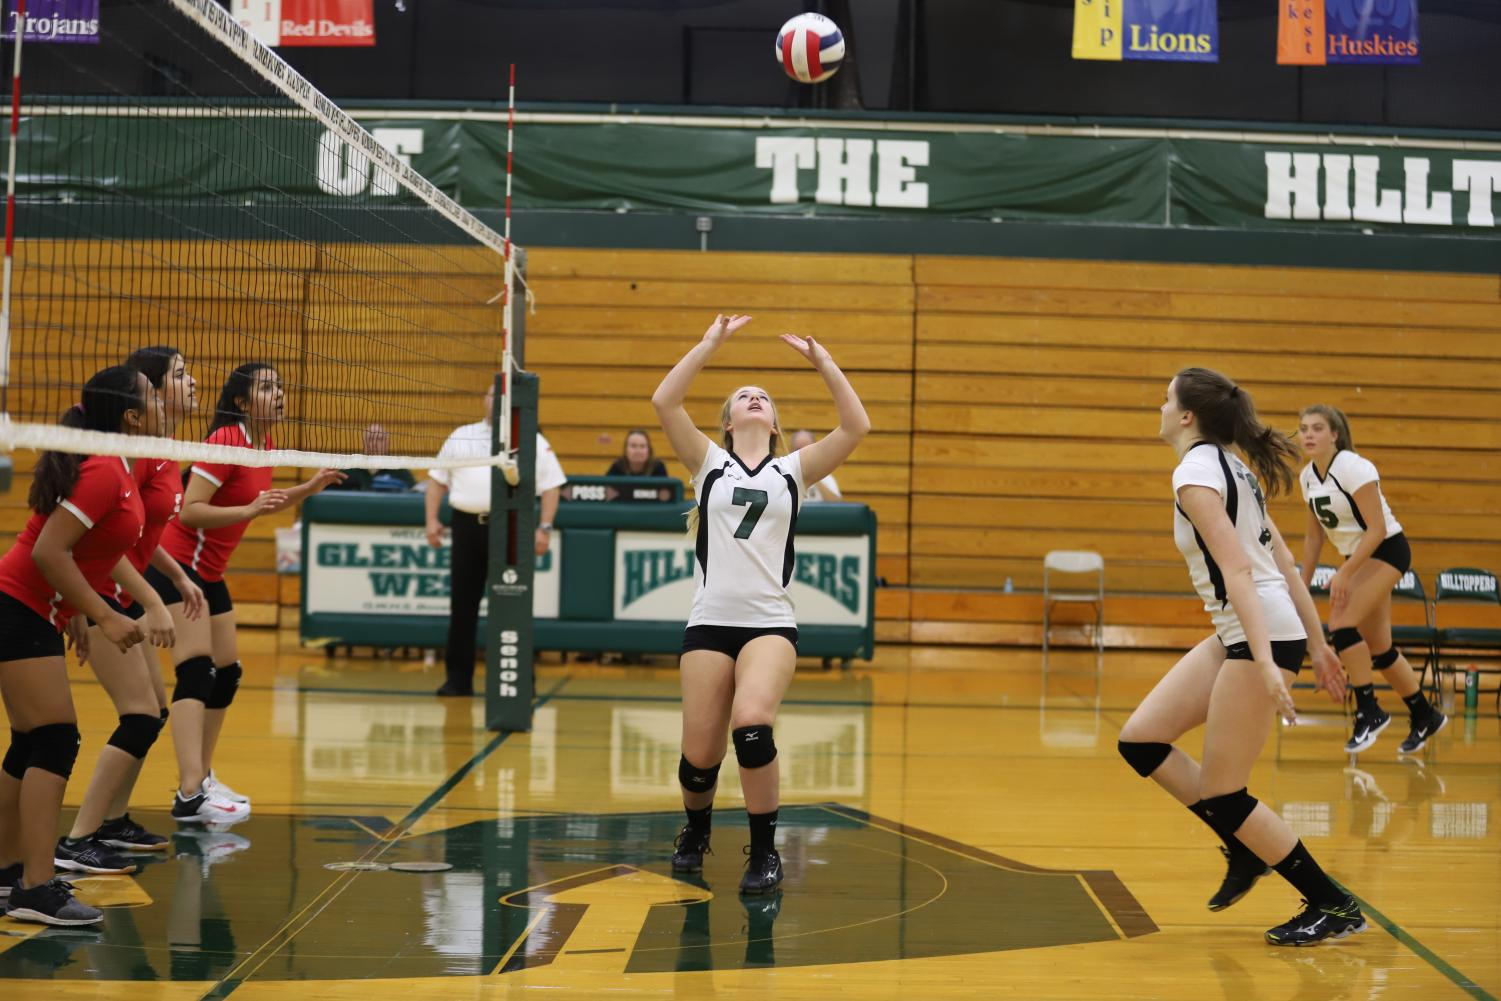 Setter+Anna+Wince+%28sophomore%29+sets+to+Middle+Hitter+Fiona+Kelly+%28sophomore%29.%0A